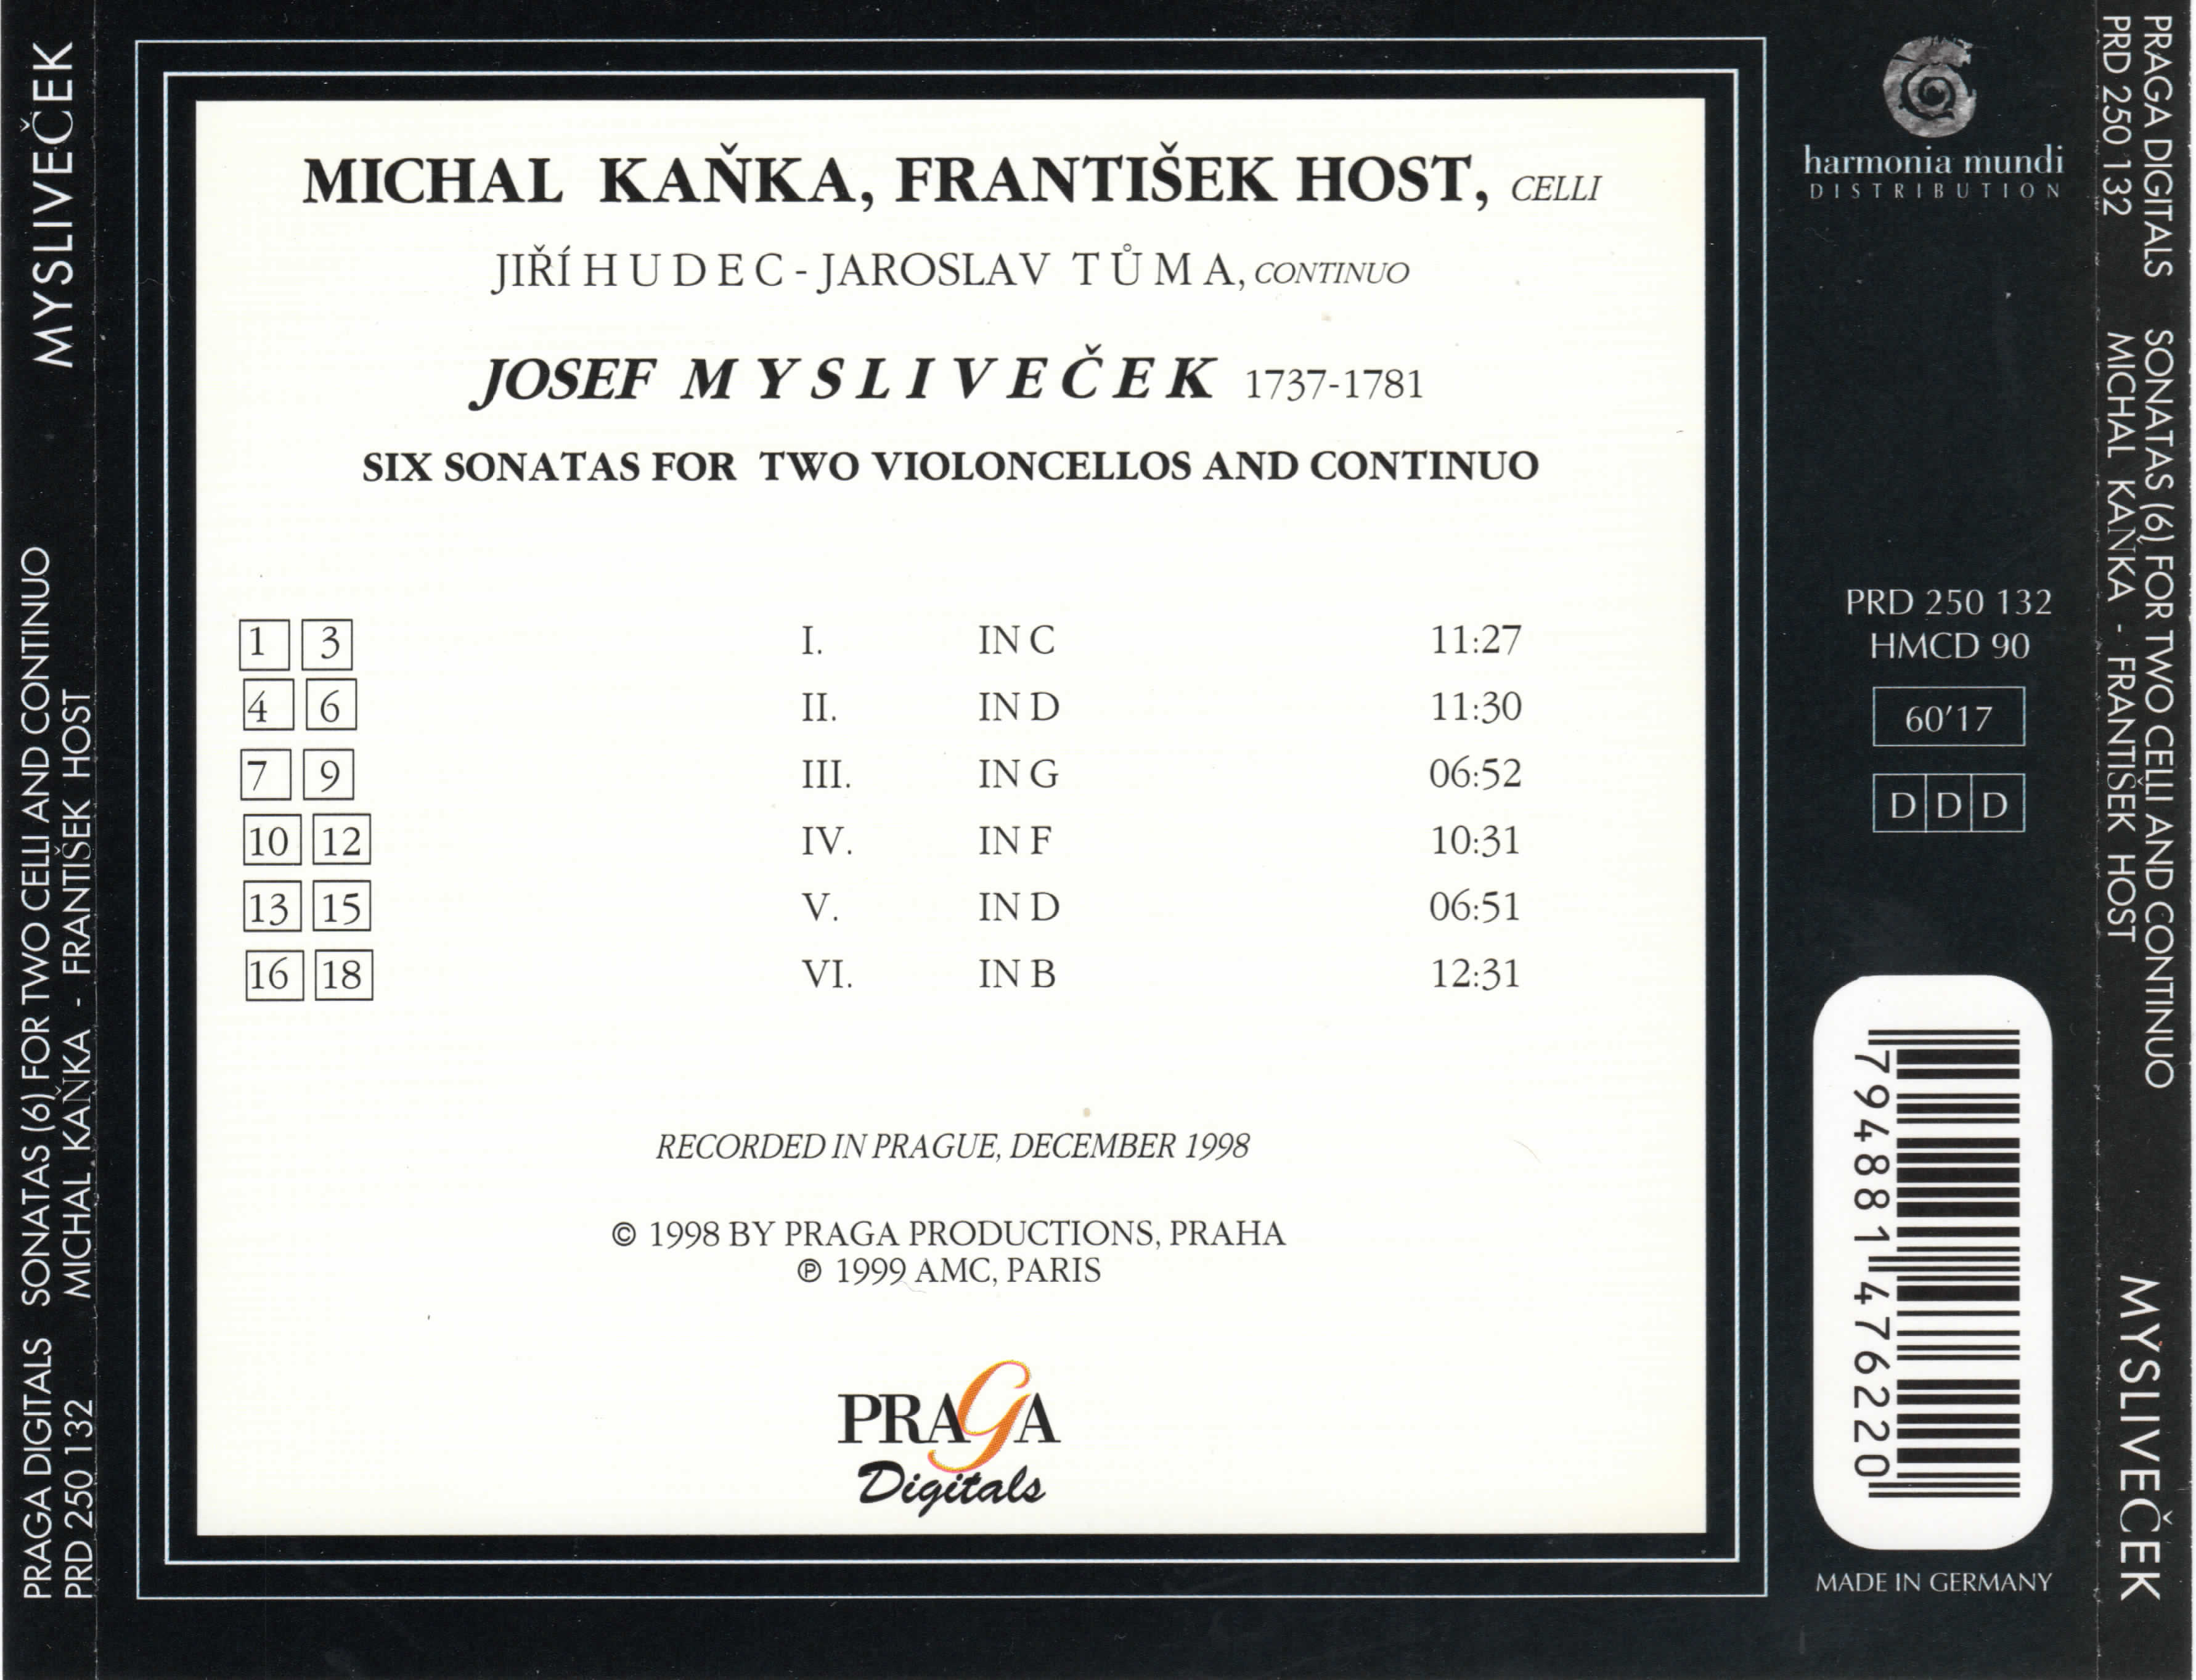 Michal Kanka, Frantisek Host, Jiri Hudec, Jaroslav Tuma - Mysliveček: Sonatas for Two Cellos and Continuo (1999)